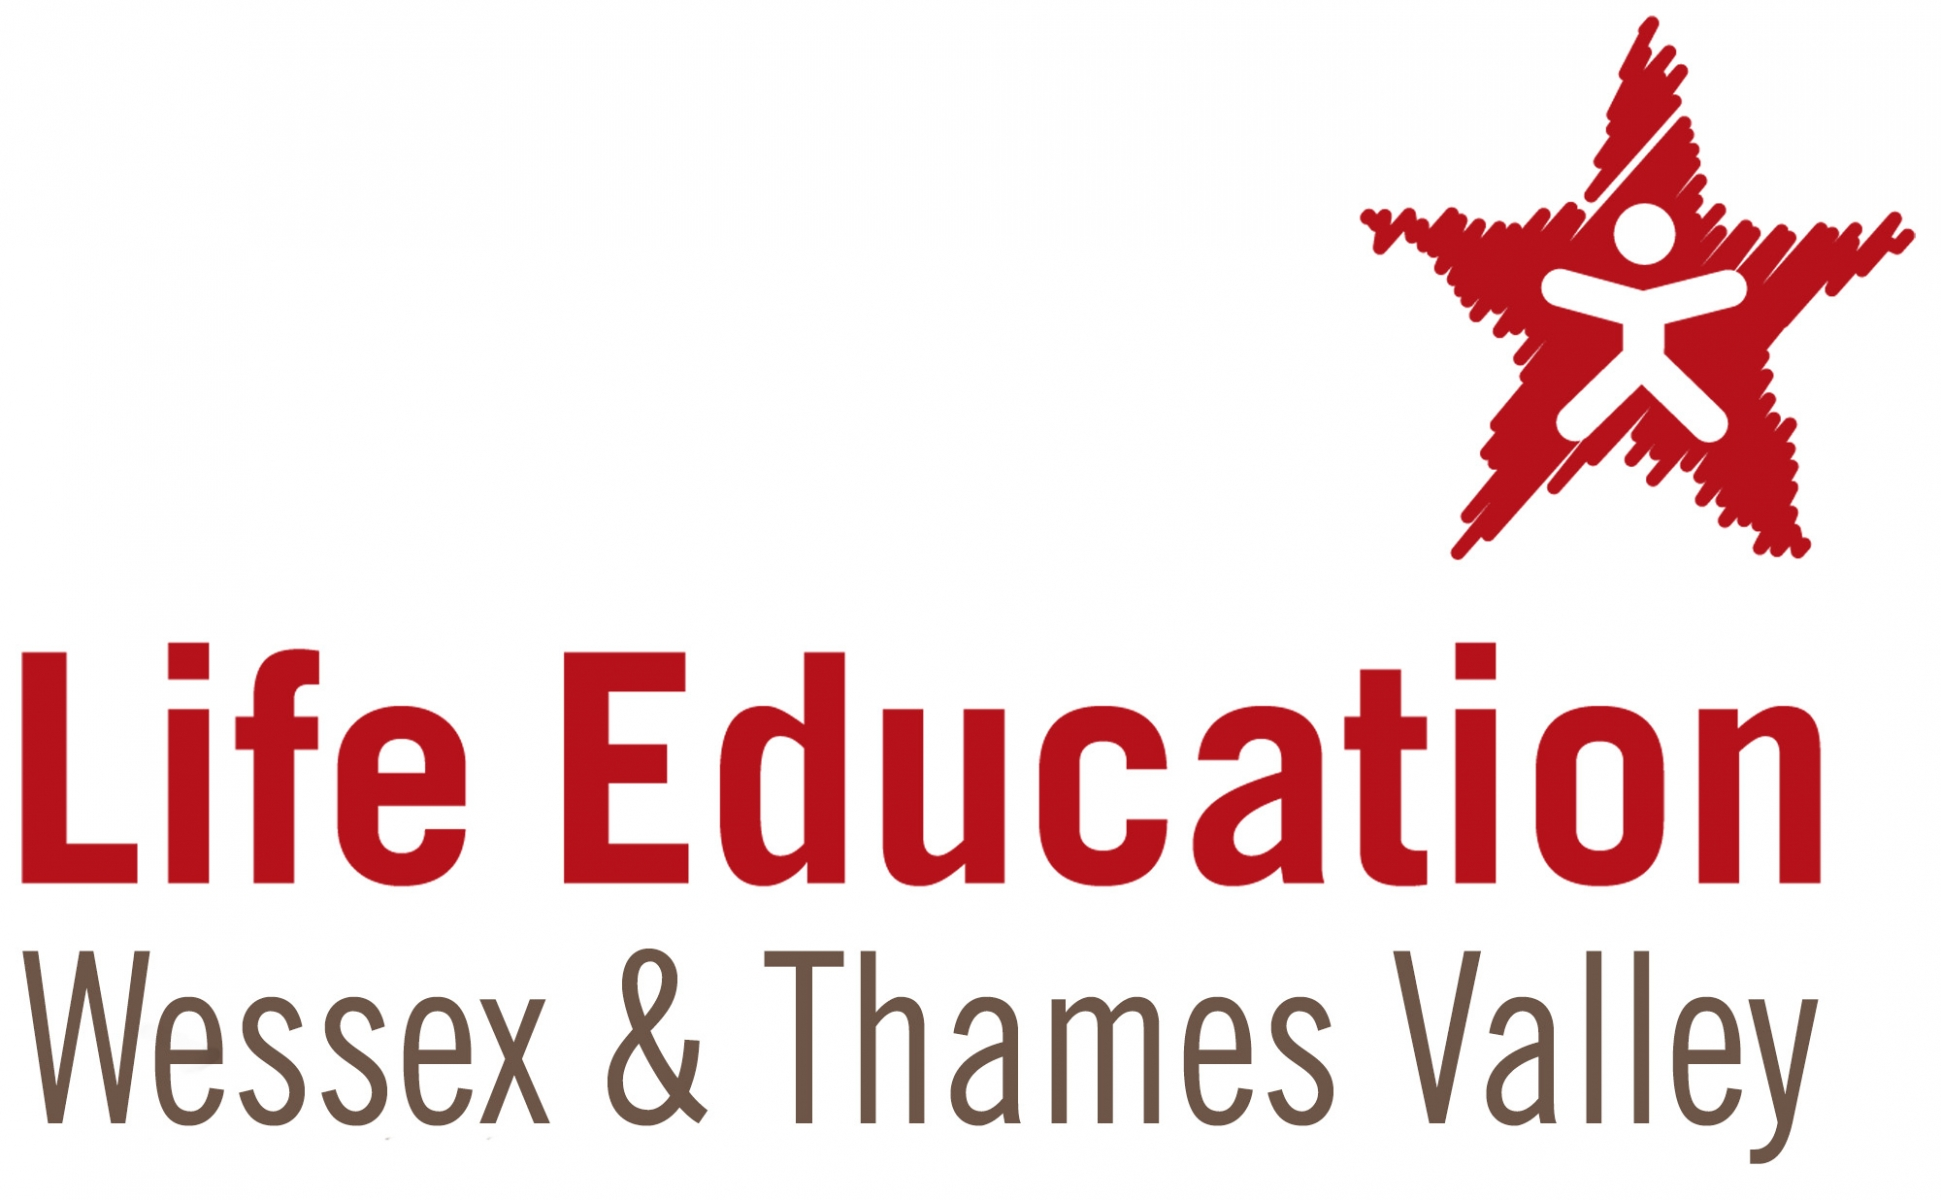 Life Education Wessex & Thames Valley eCards